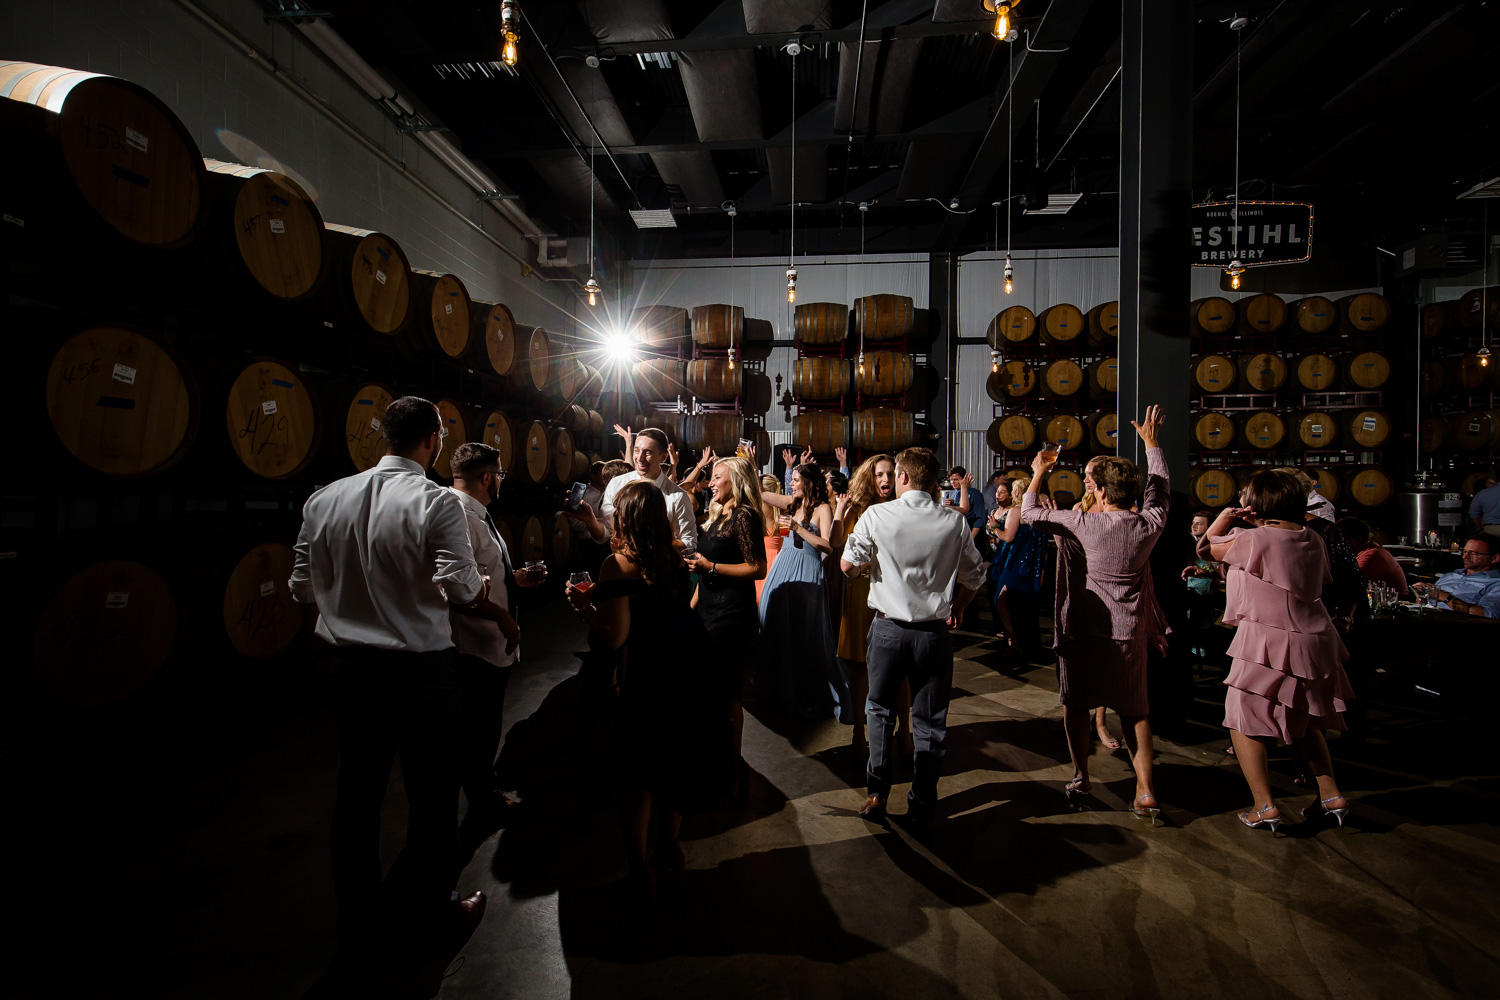 Destihl Brewery Wedding Dancefloor